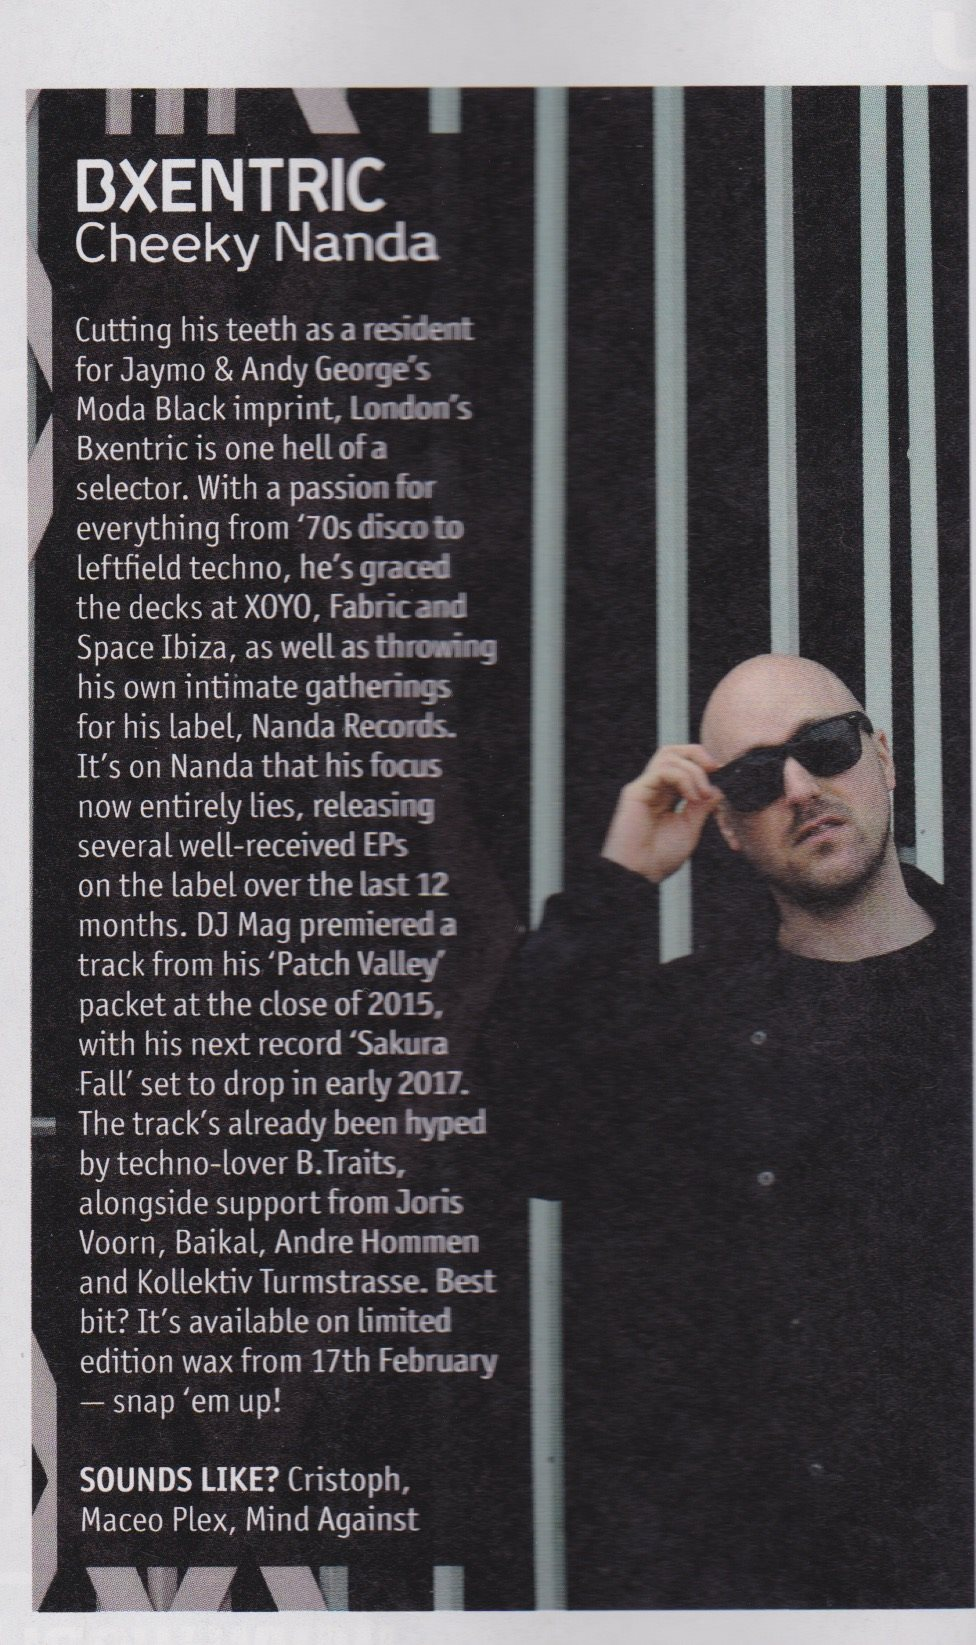 helping to shape artists careers - bxcentric cheeky bubblers feature in DJ Mag